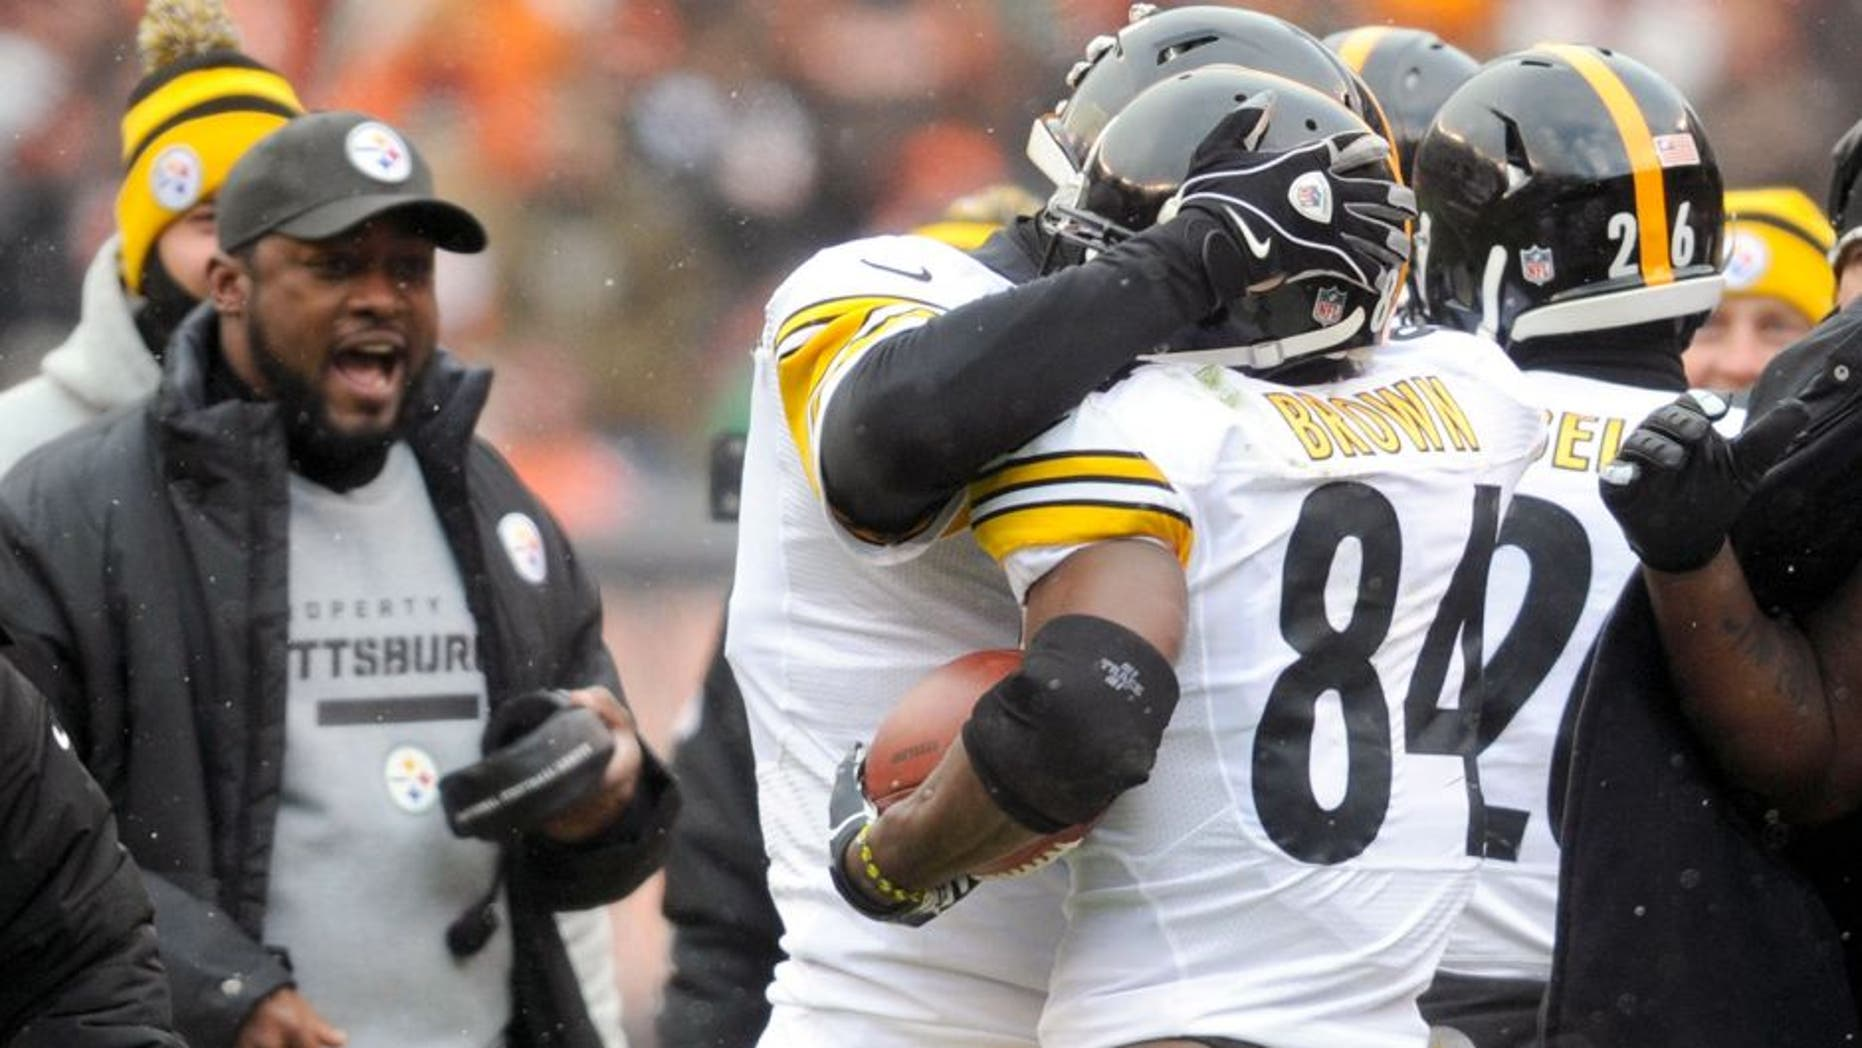 Nov 24, 2013; Cleveland, OH, USA; Pittsburgh Steelers wide receiver Antonio Brown (84) and Pittsburgh Steelers quarterback Ben Roethlisberger (7) celebrate a second quarter touchdown against the Cleveland Browns at FirstEnergy Stadium. Mandatory Credit: Ken Blaze-USA TODAY Sports